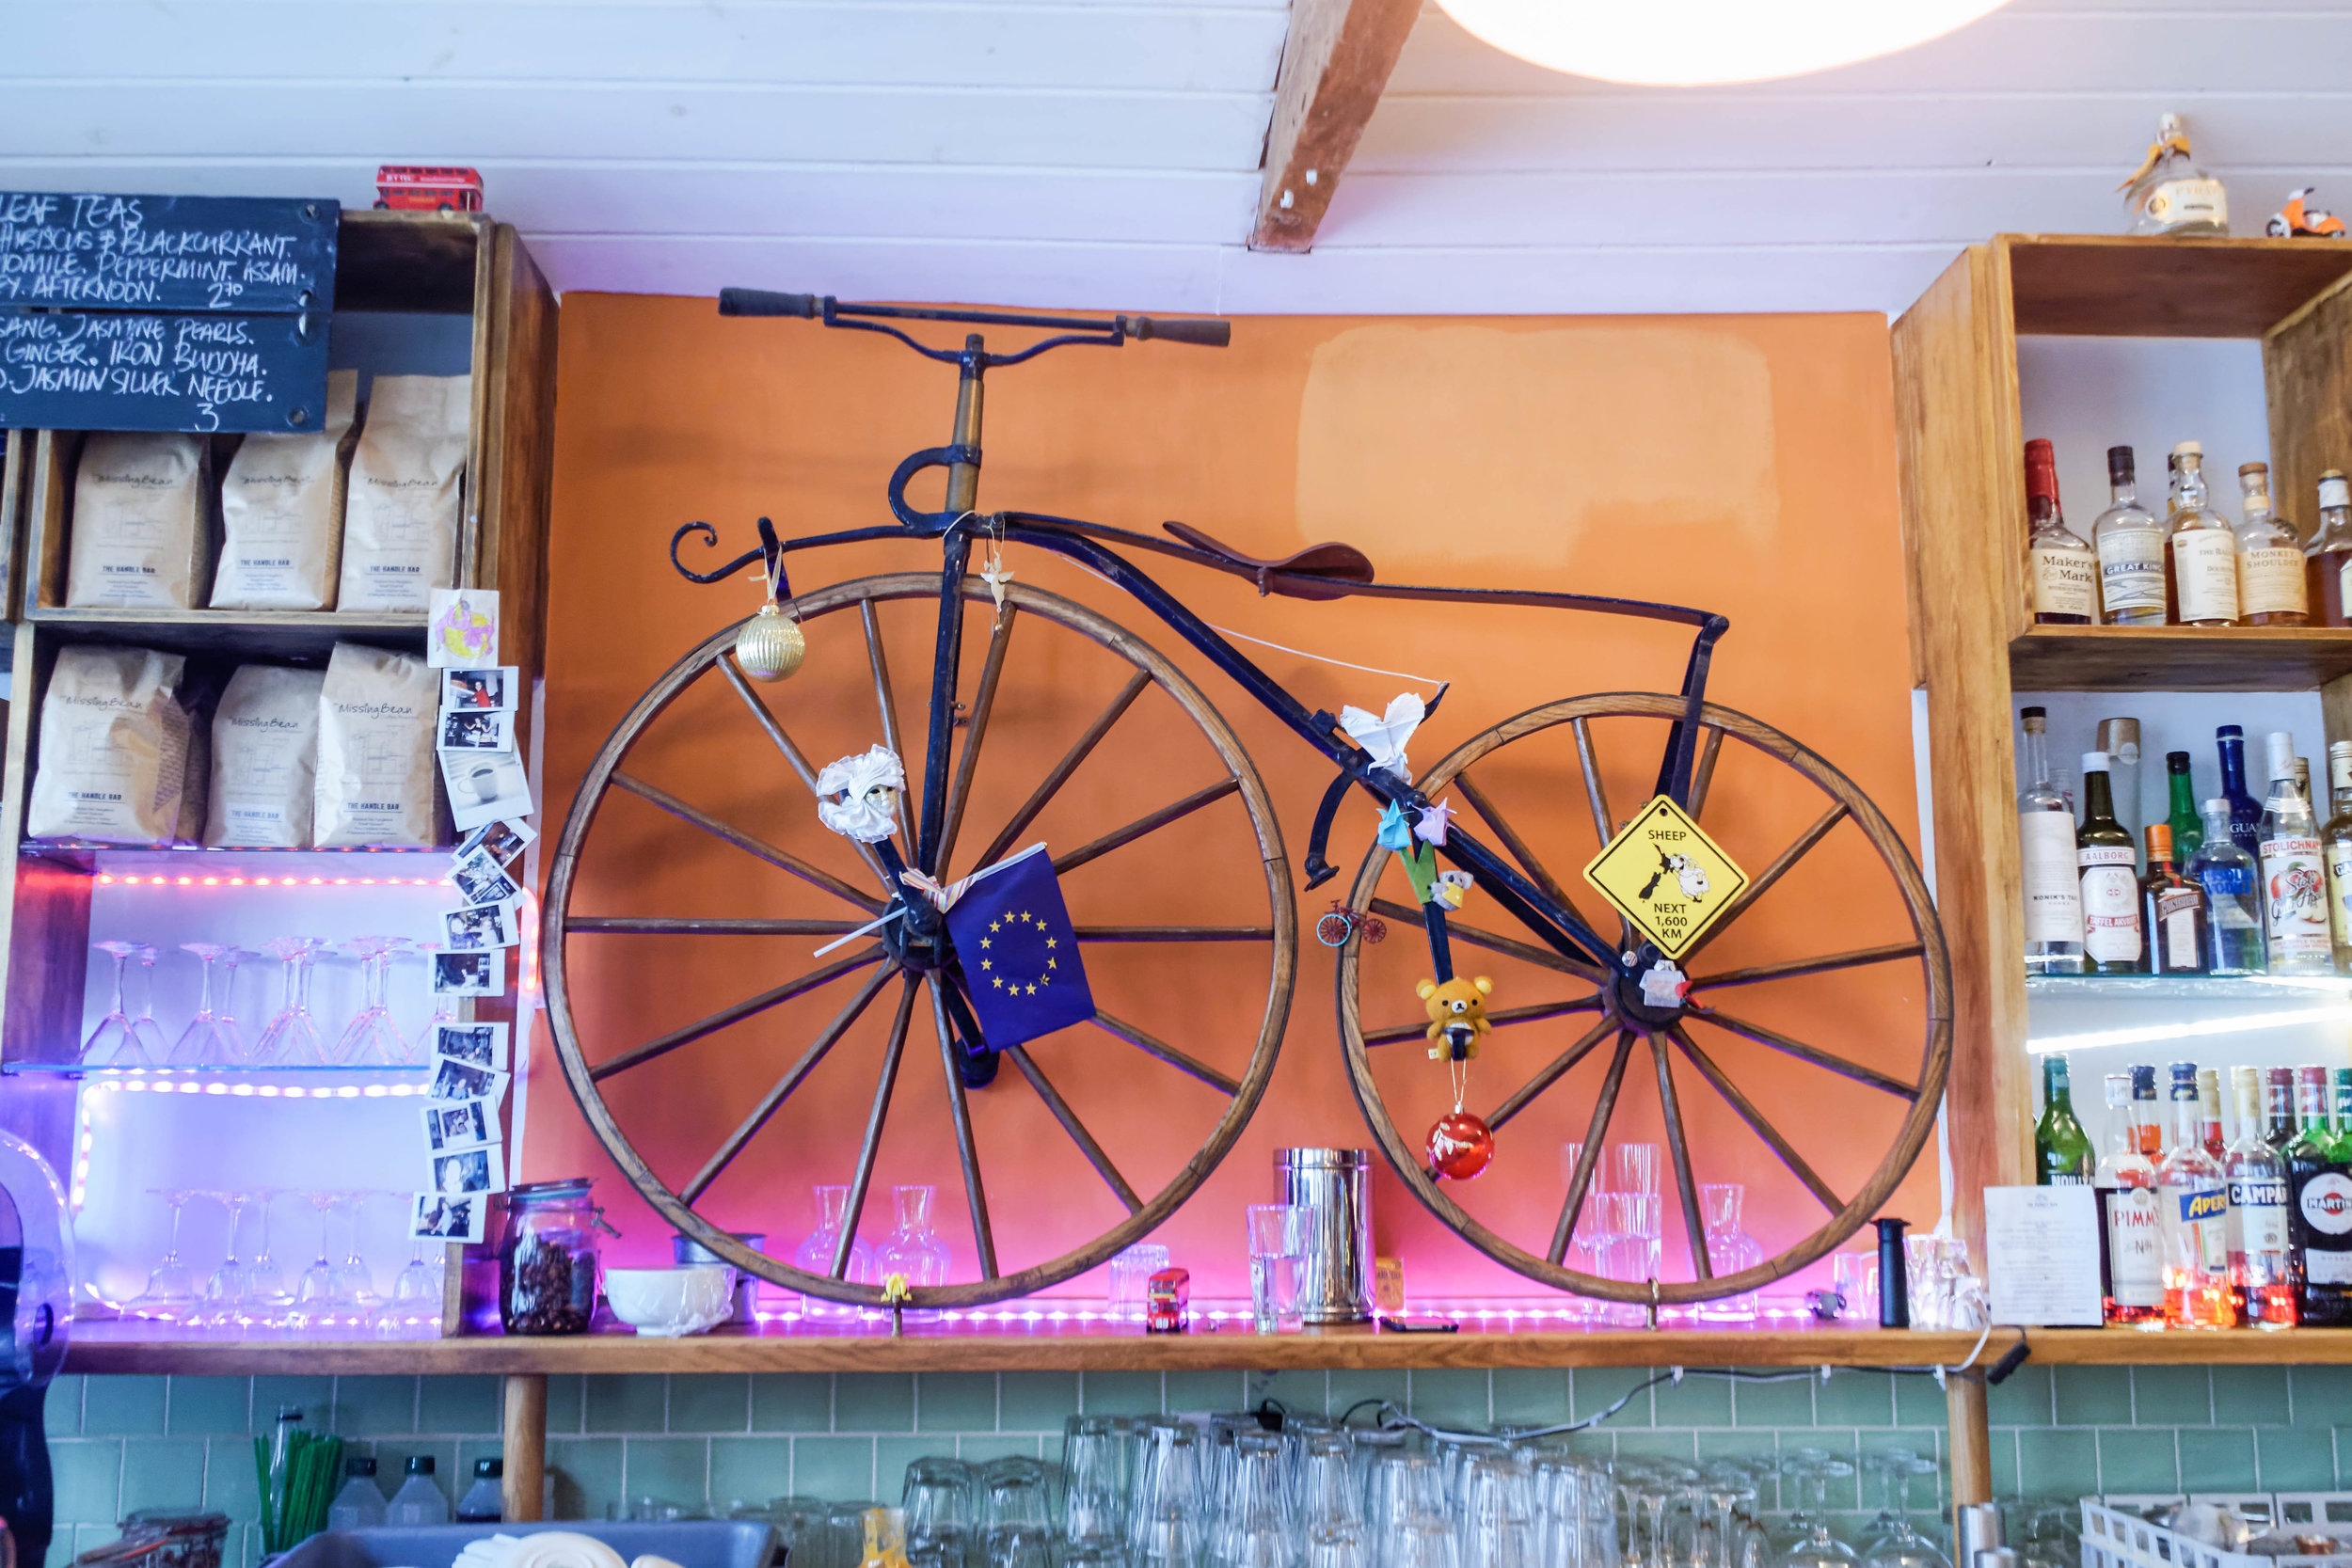 While you're thinking about what to order, check out all the vintage cycles decorating the place.